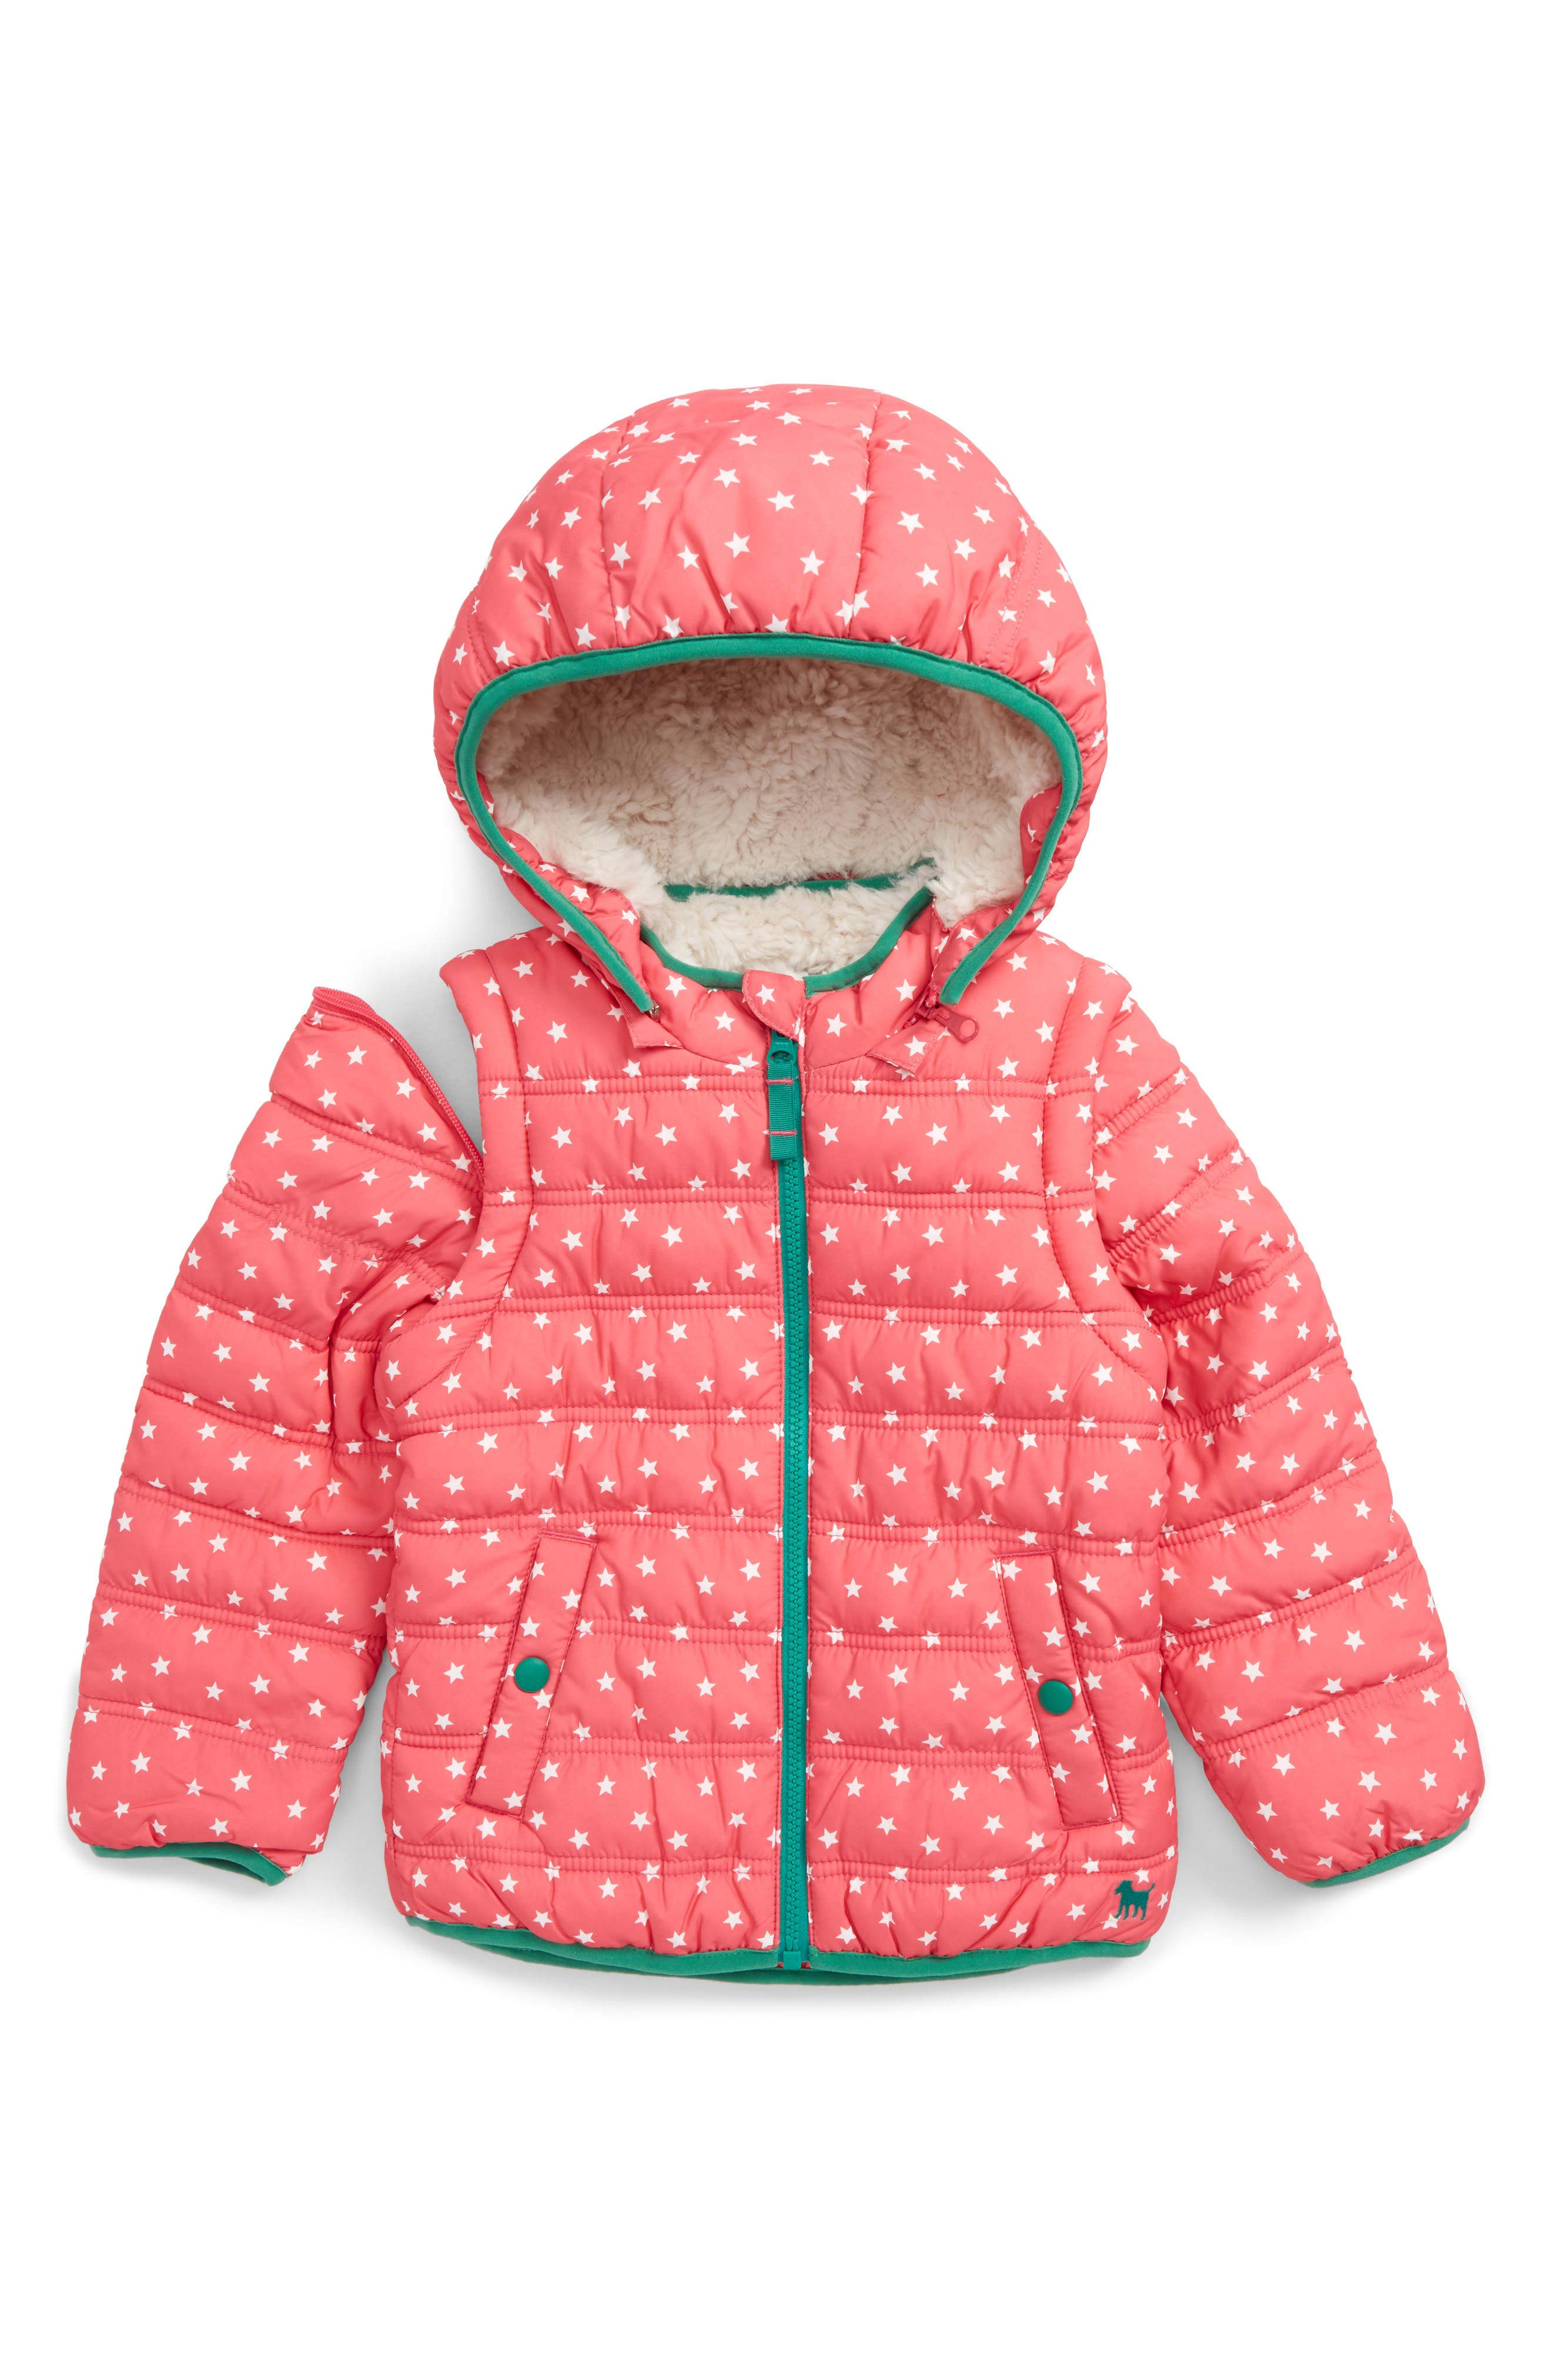 2-in-1 Water Resistant Padded Jacket,                         Main,                         color, Pink Honeysuckle